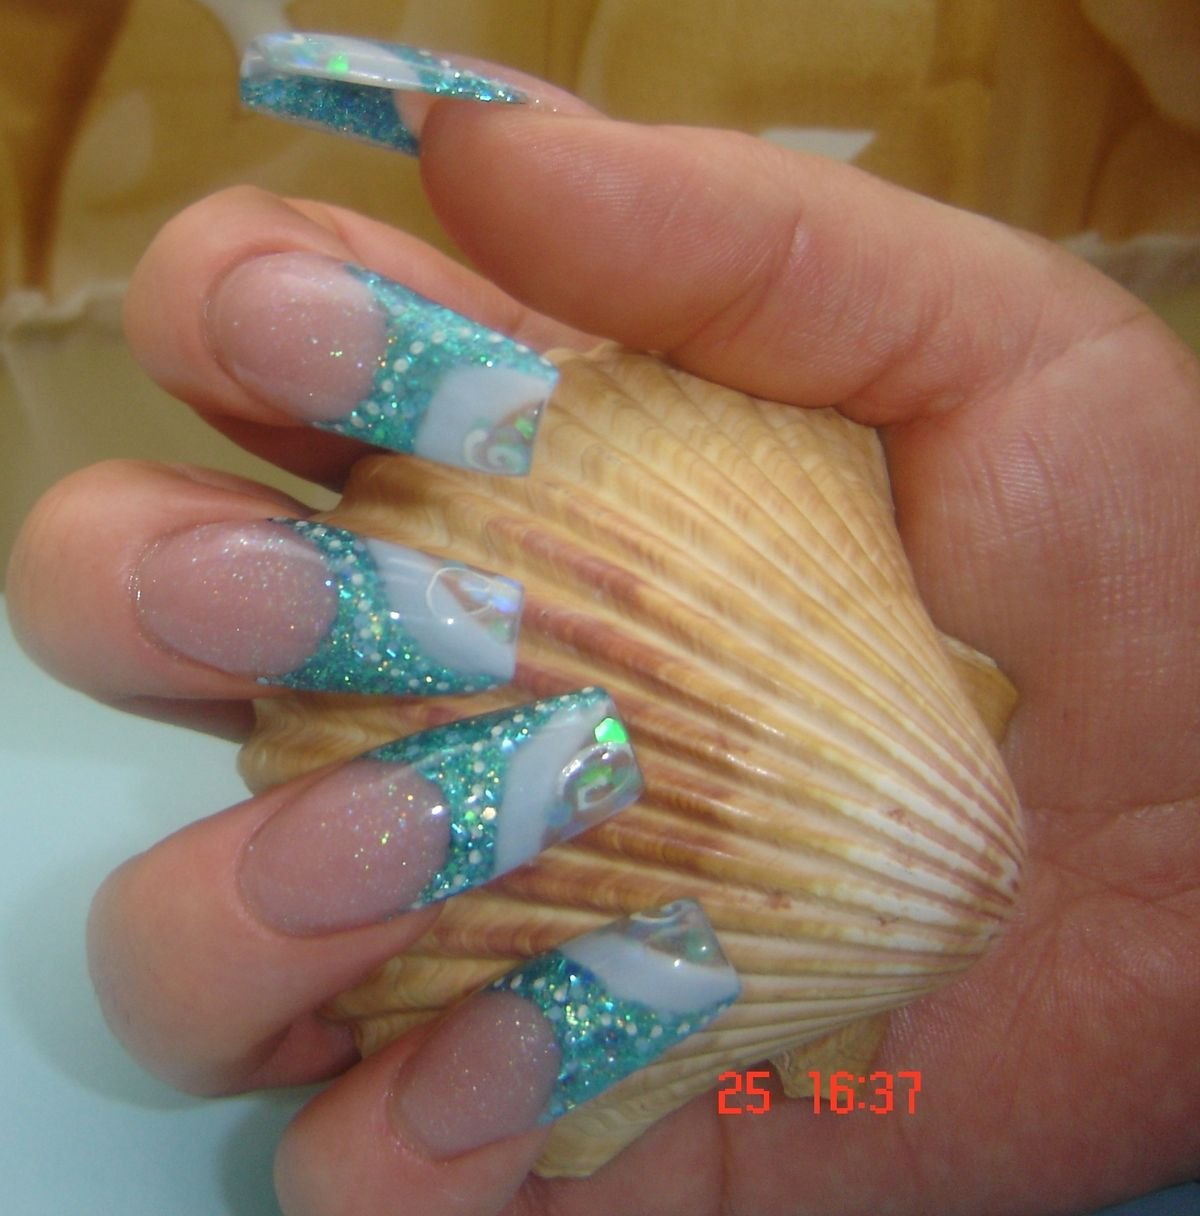 dd0ba93deb581ff3a328de64a0d360a3 - uñas gel o porcelana mejores equipos